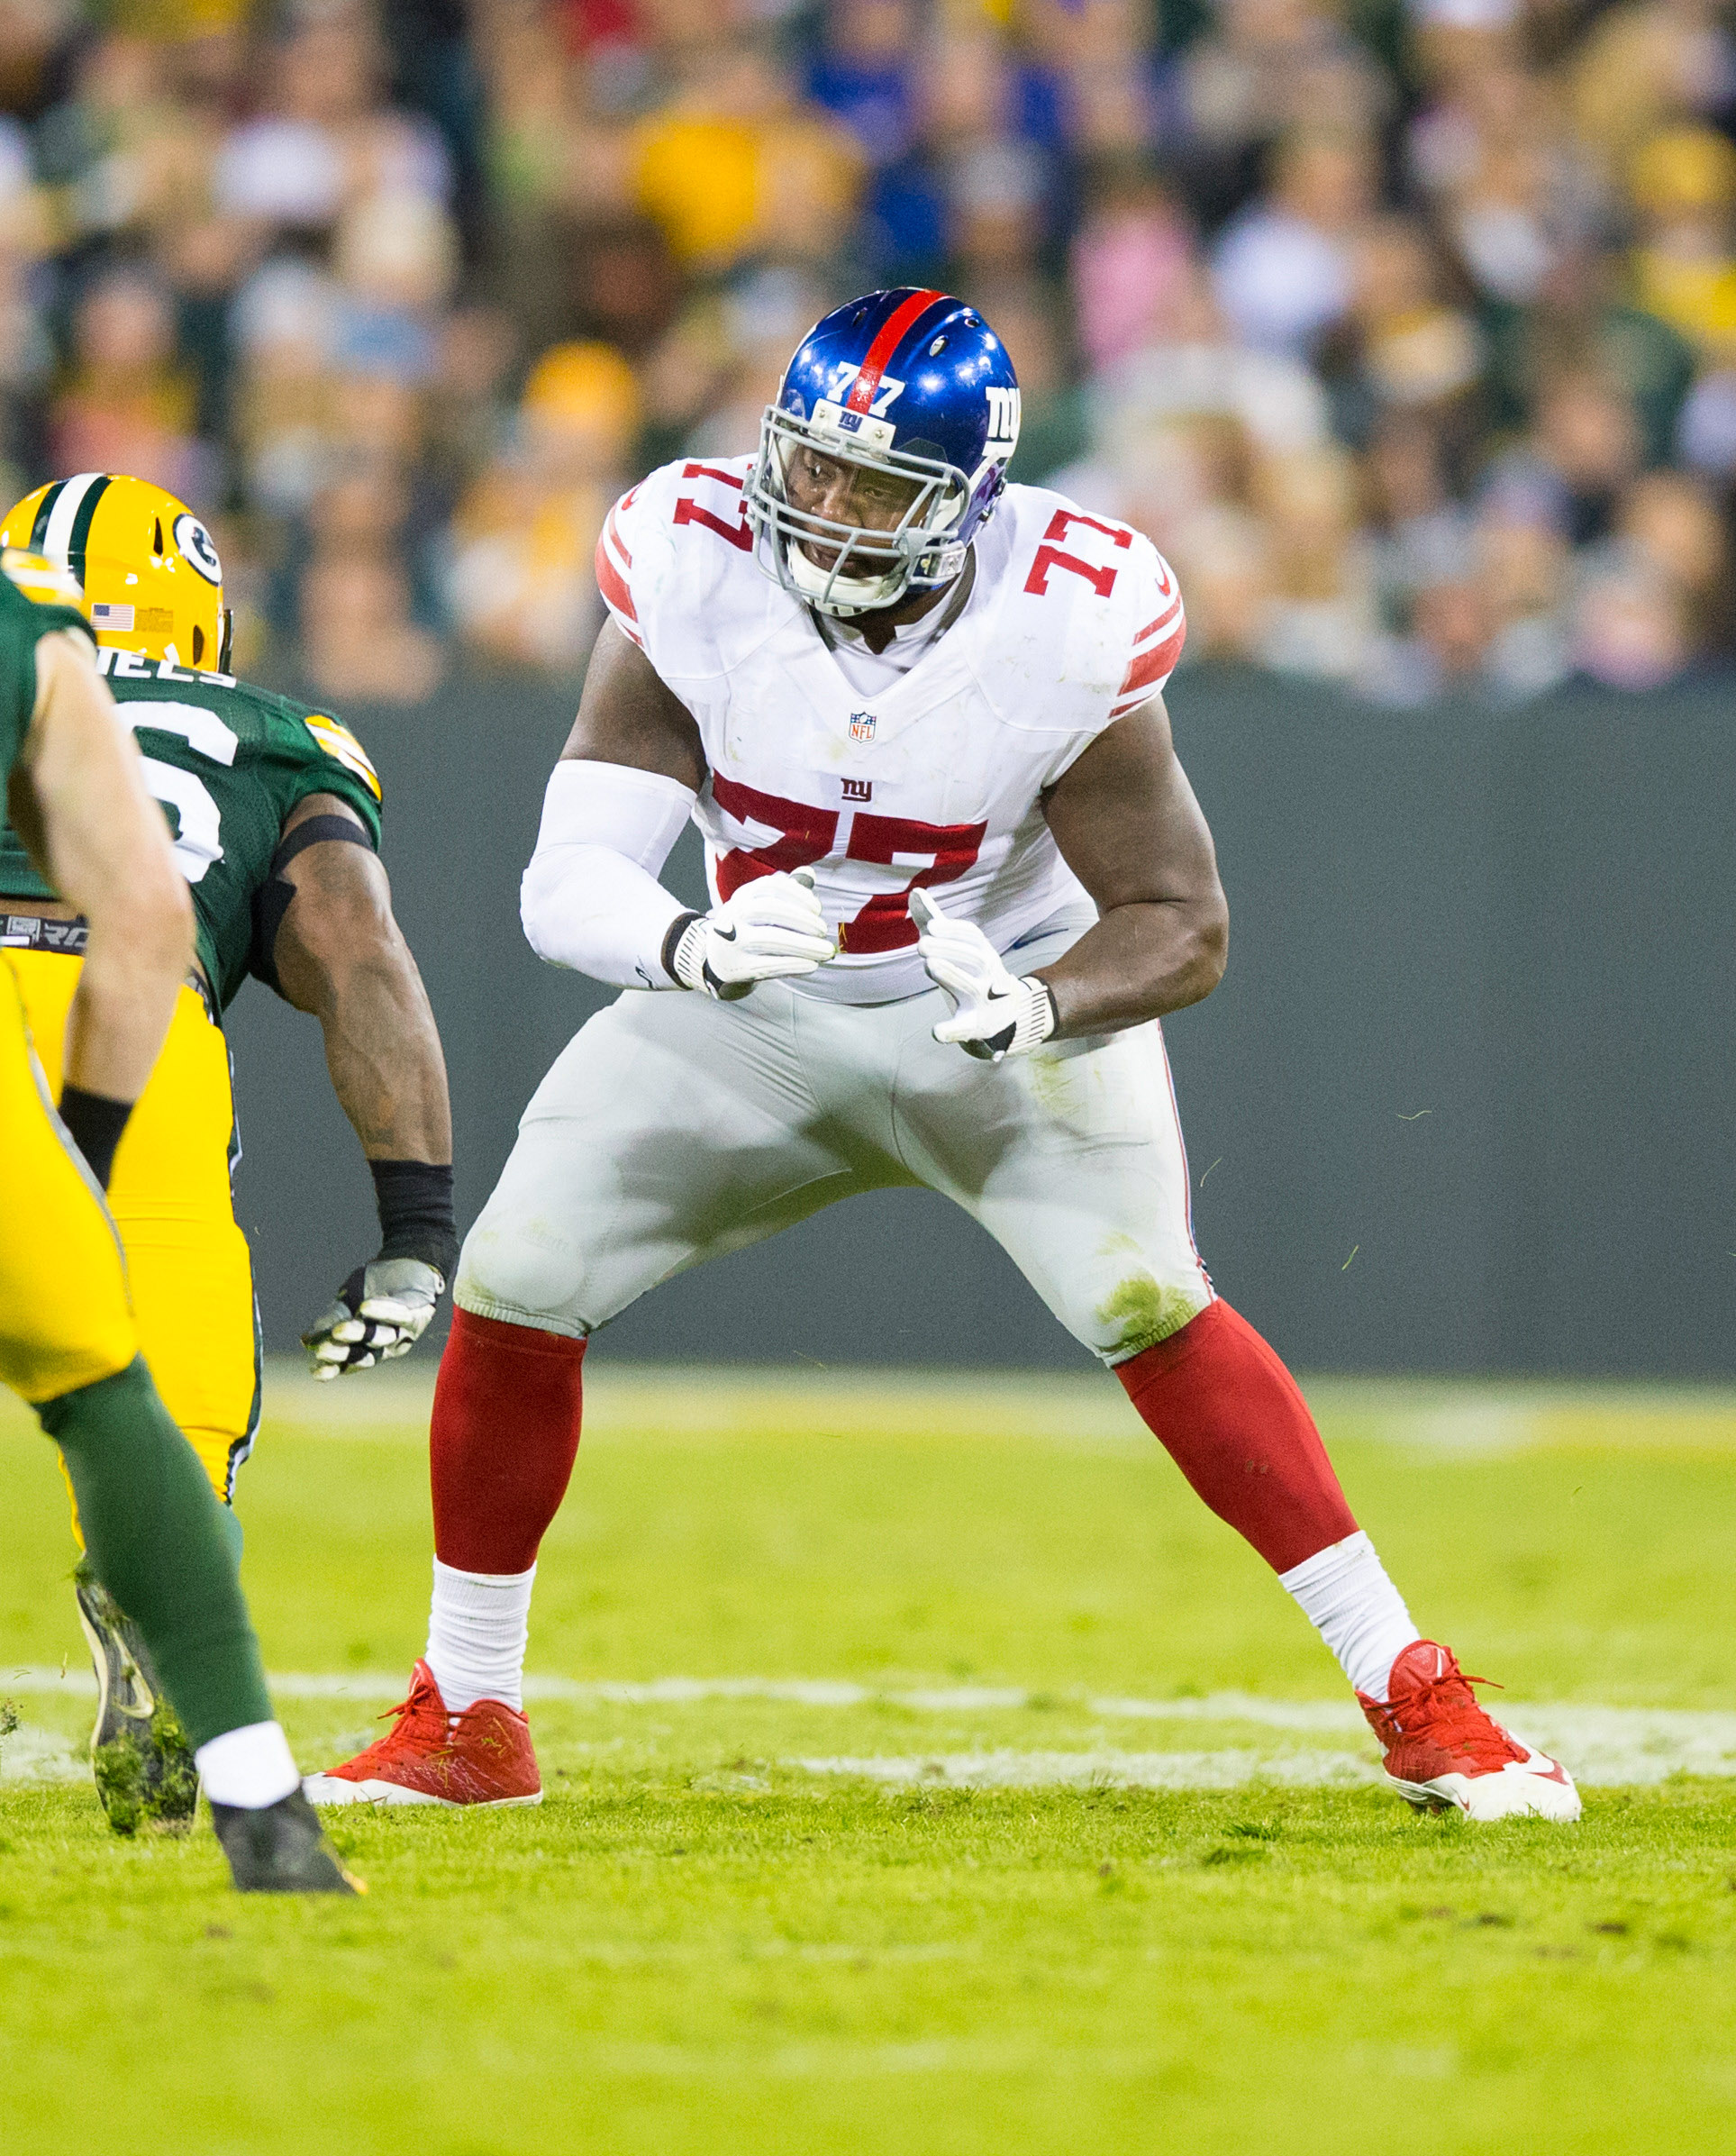 9611725-nfl-new-york-giants-at-green-bay-packers